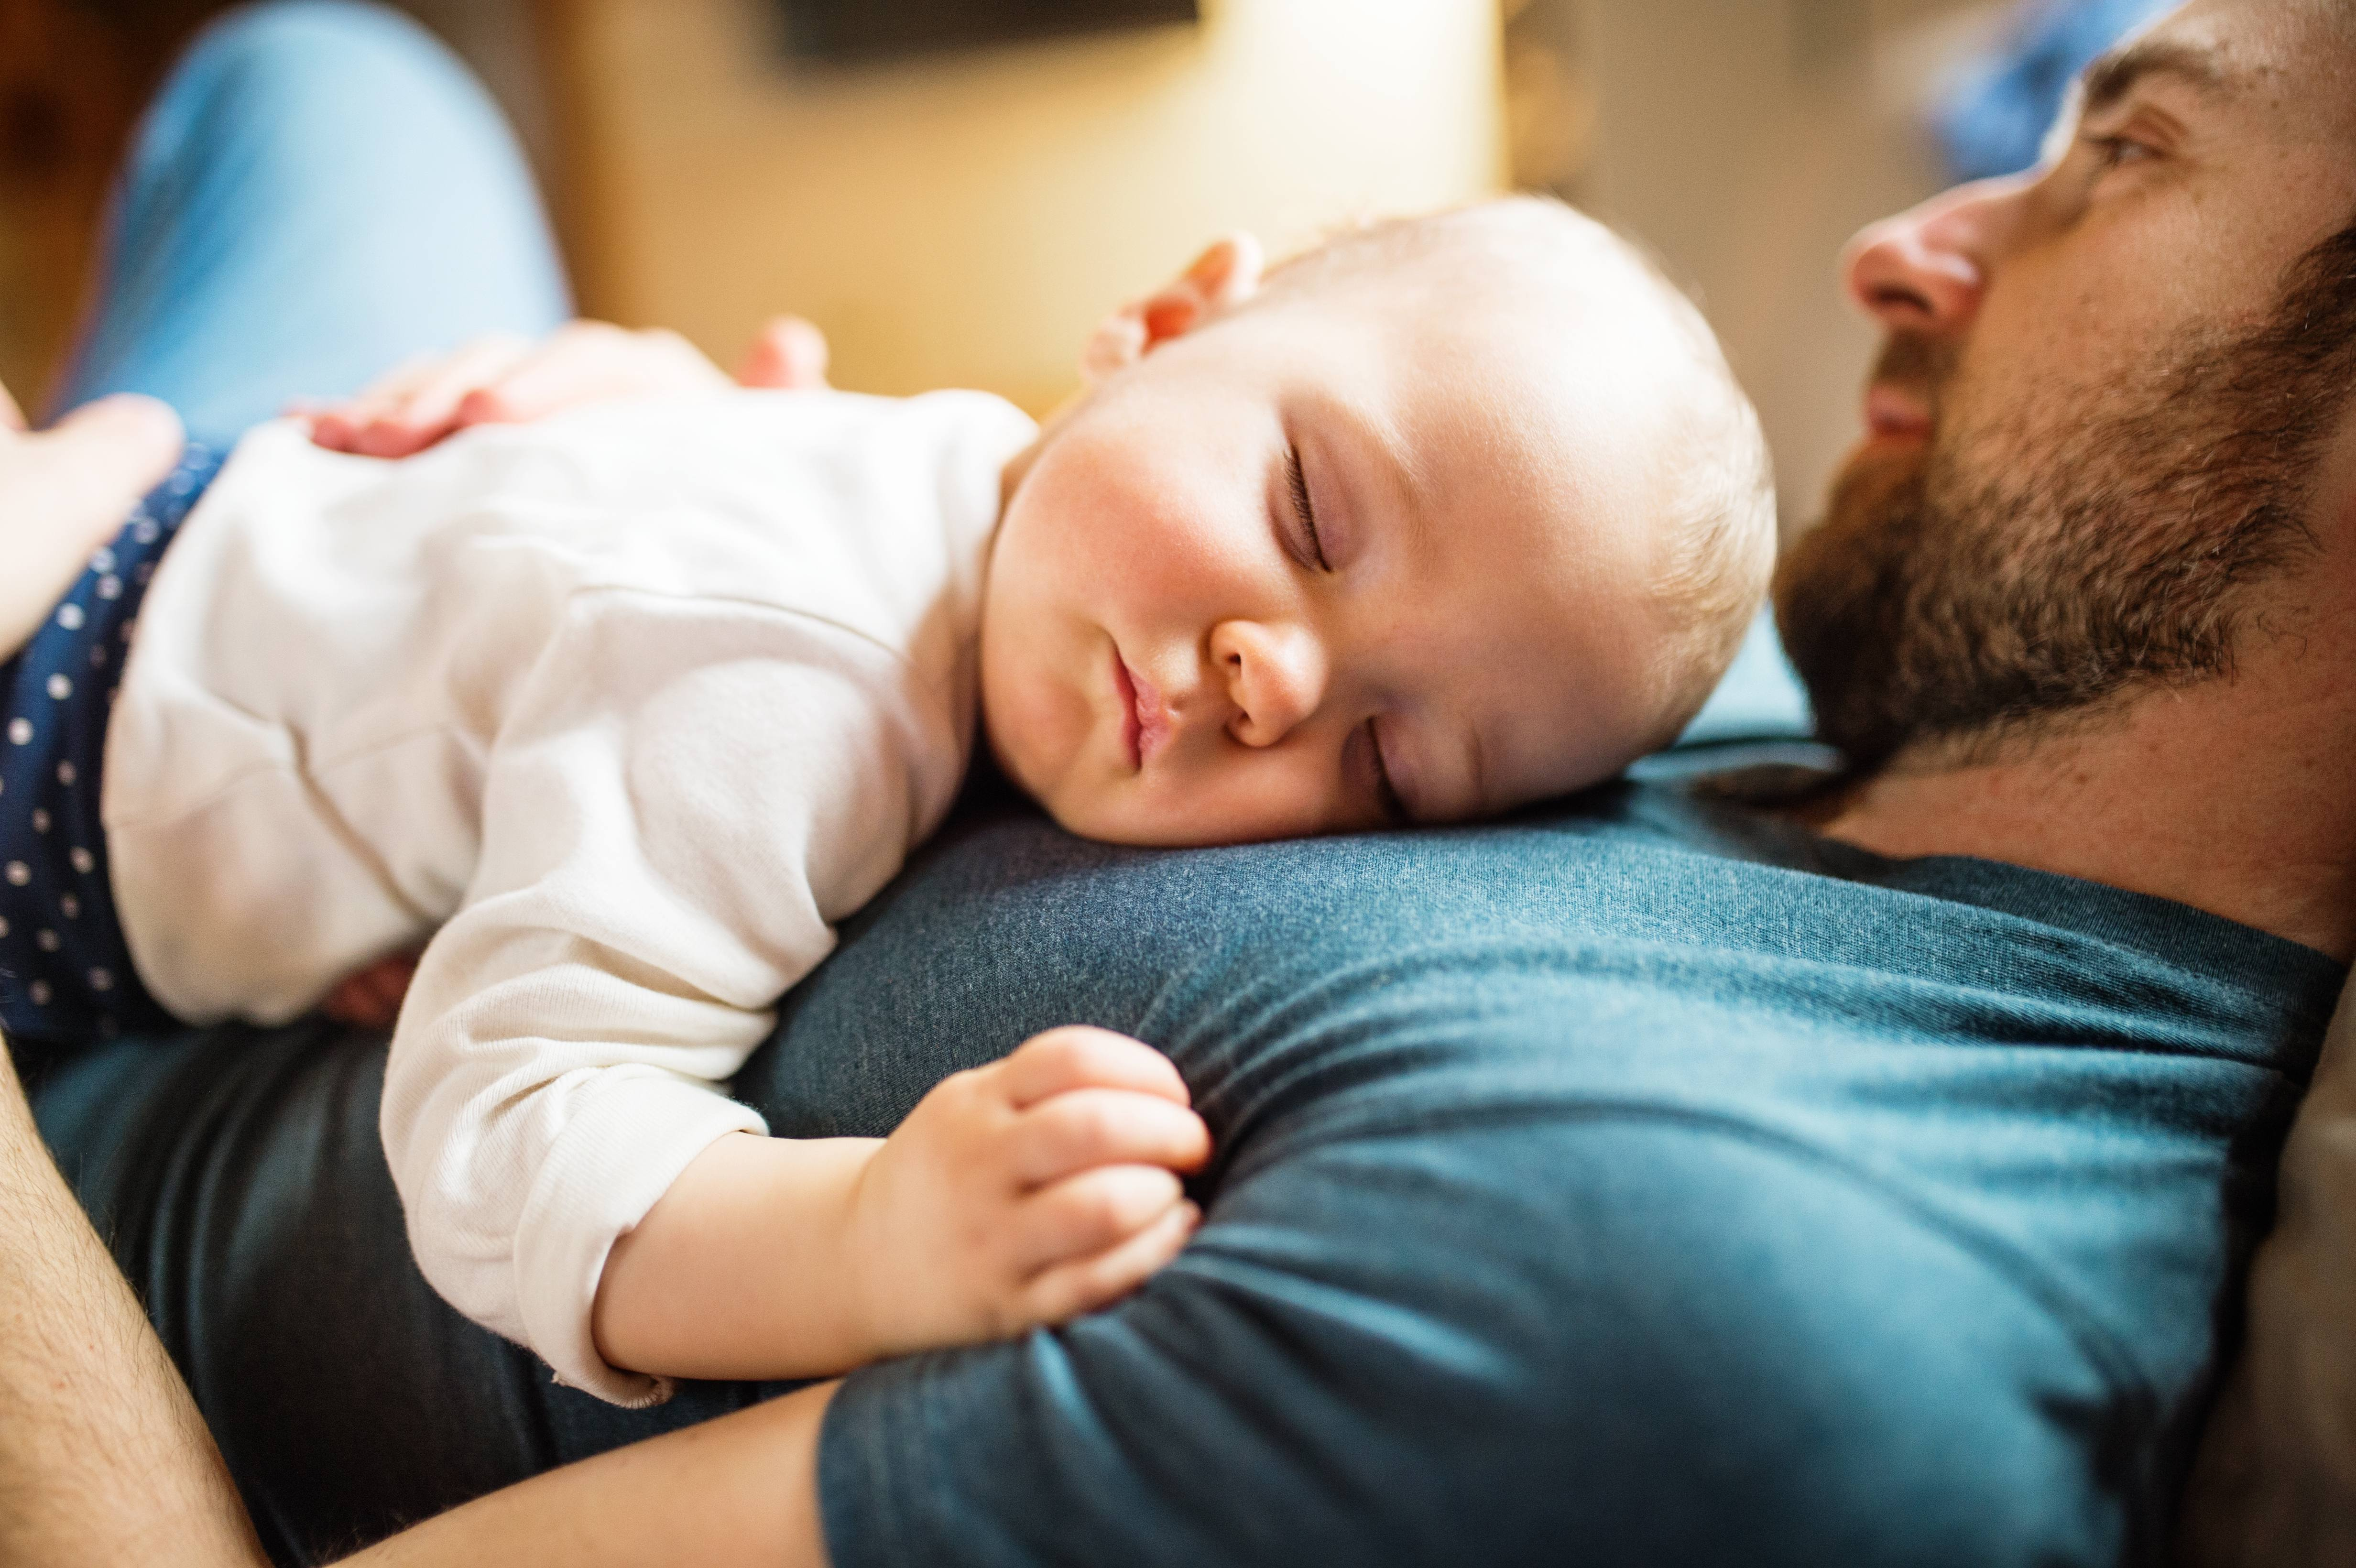 a white man in a blue t-shirt resing on his back with an white infant, baby sleeping on the man's chest